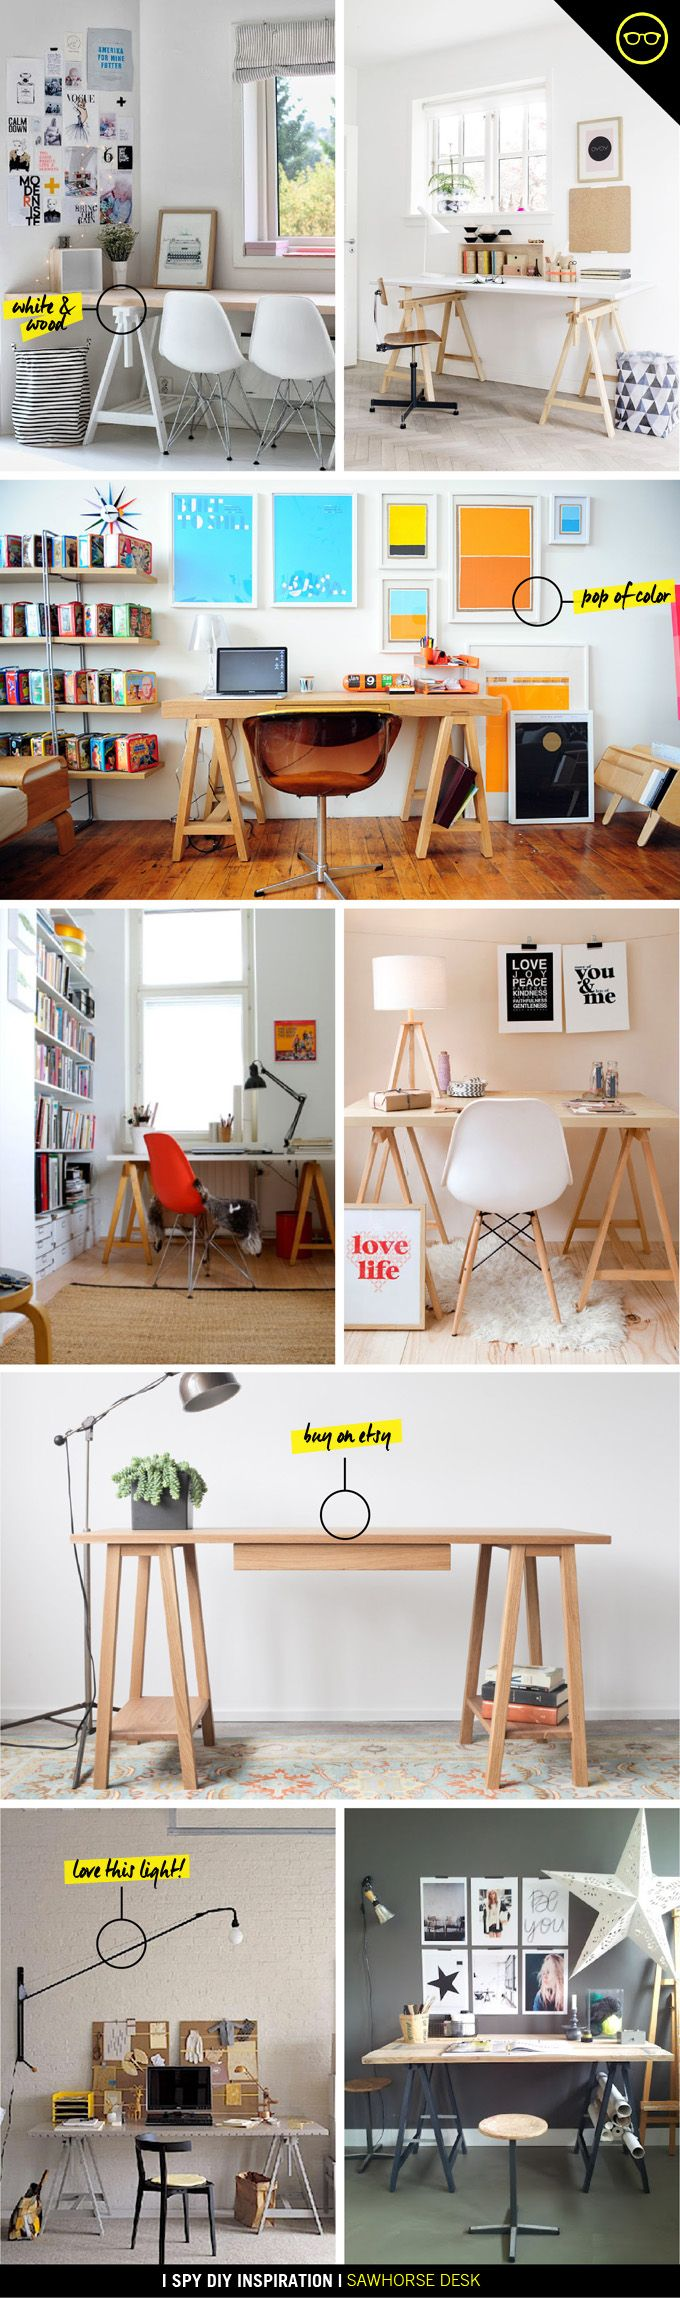 DIY INSPIRATION   Sawhorse Desk....must build our own desk for the study or craft room! It's just too easy not too